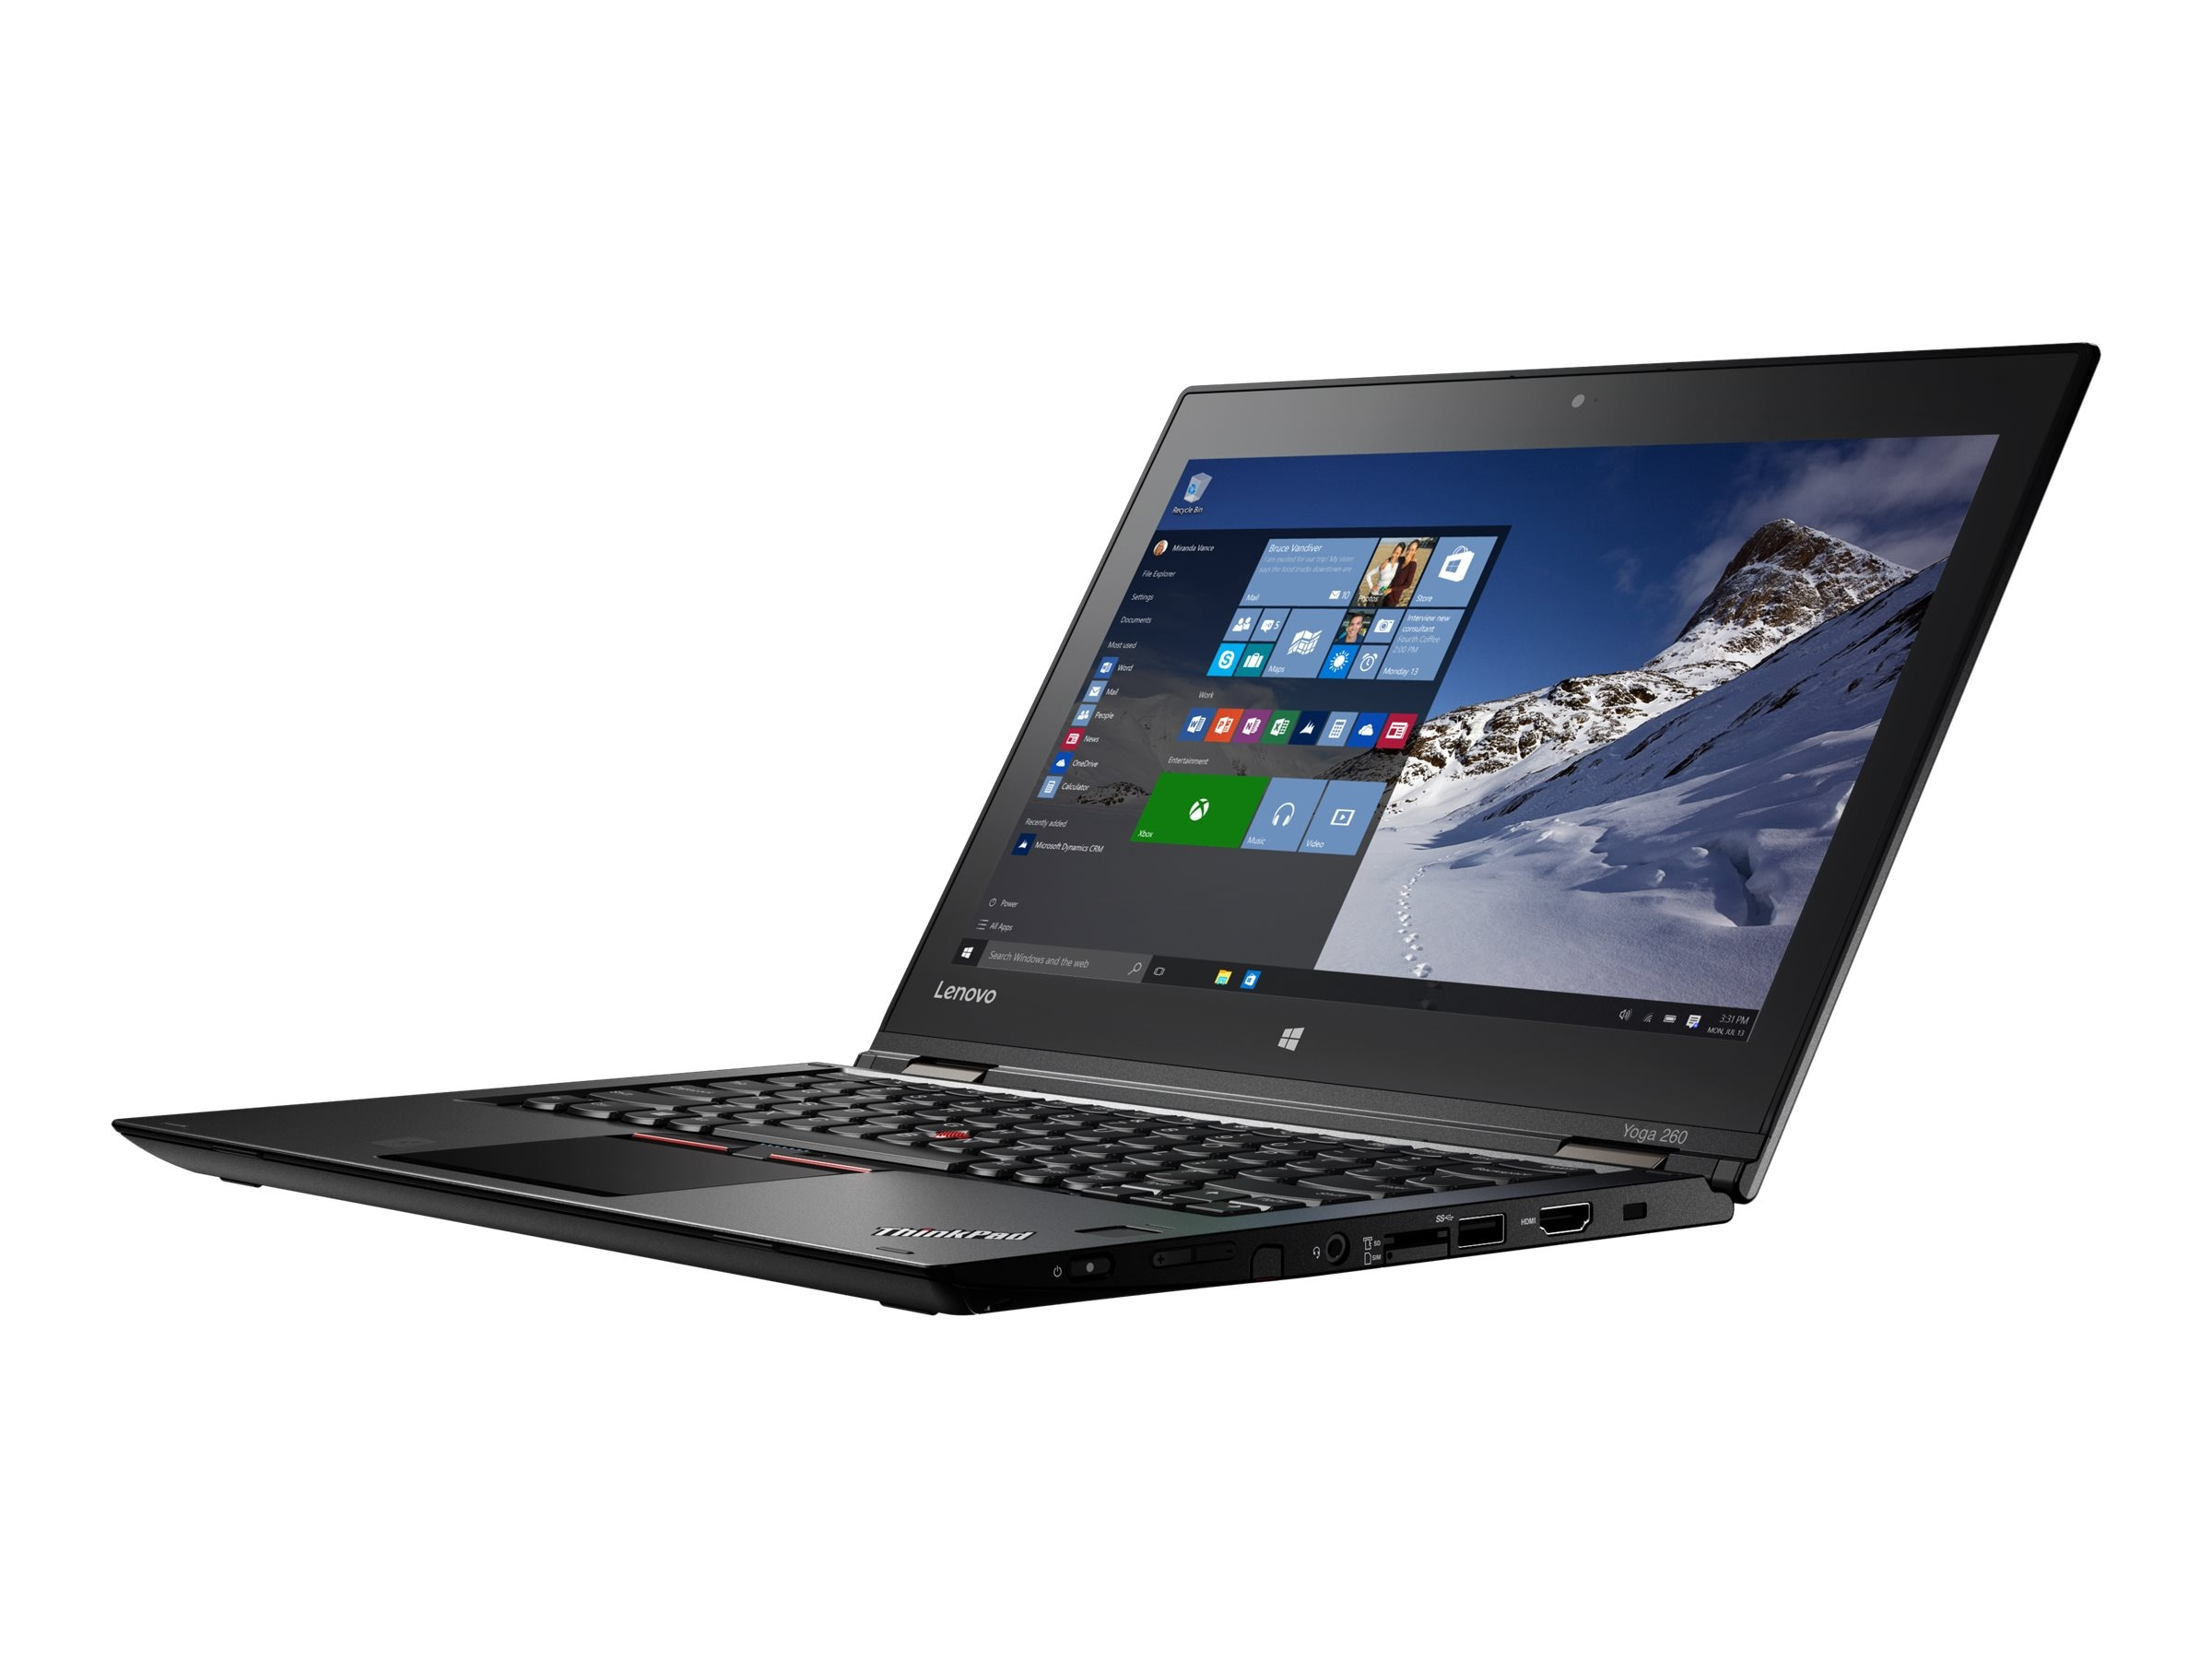 Lenovo TopSeller ThinkPad Yoga 260 Core i5-6300U 2.4GHz 8GB 180GB OPAL2 ac BT WC Pen 4C 12.5 FHD MT W10P64